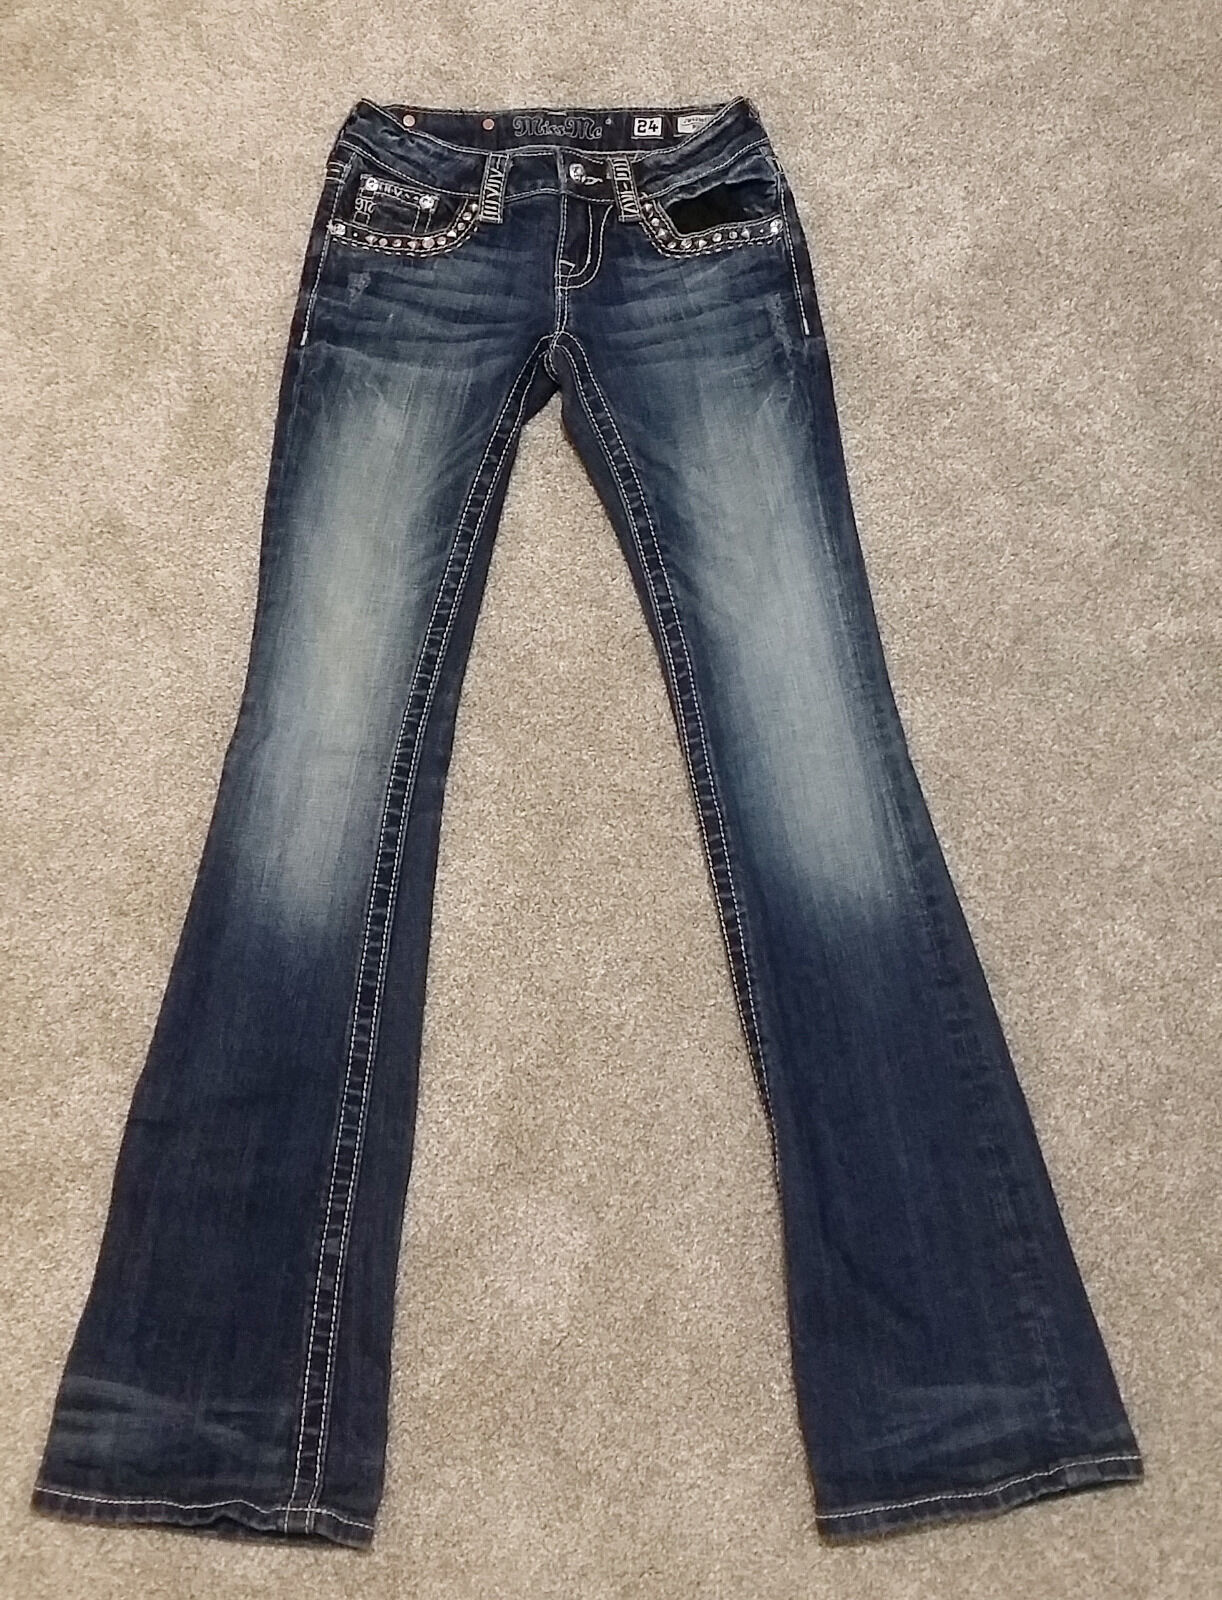 RARE - Women's Fashion - Miss Me Bootcut Wash Denim Jeans -  Size 24